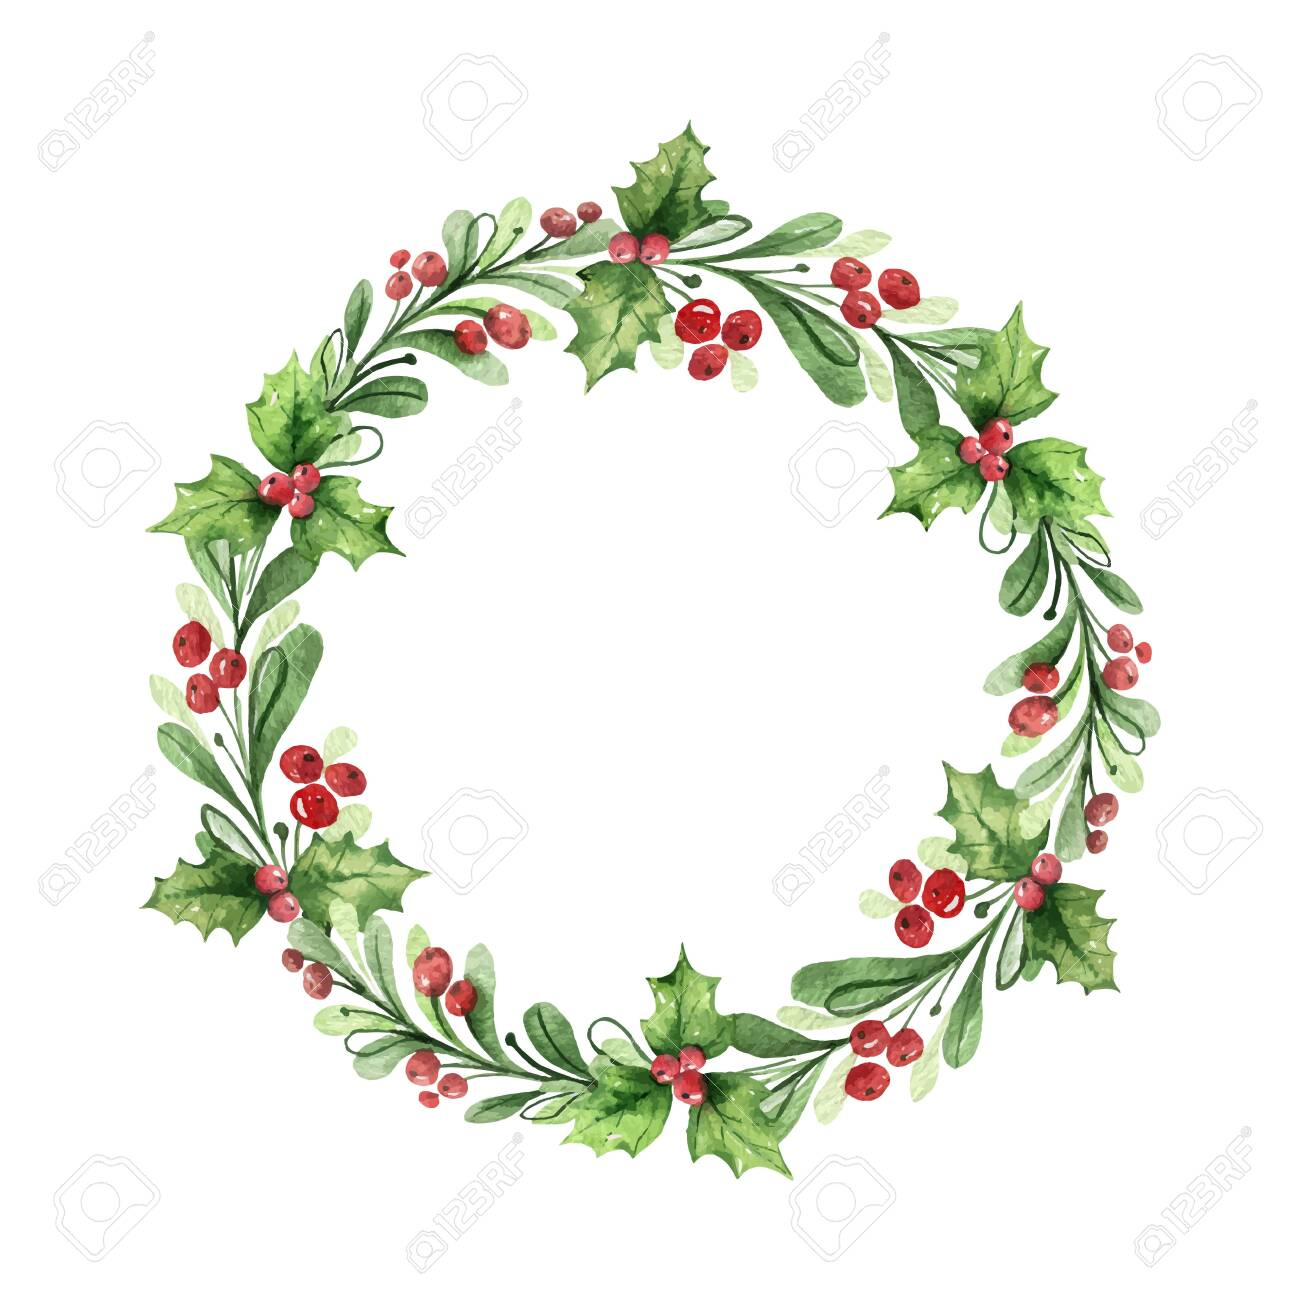 Watercolor vector Christmas wreath with green branches and red berries. Illustration for greeting floral postcard and invitations isolated on white background. - 130047650